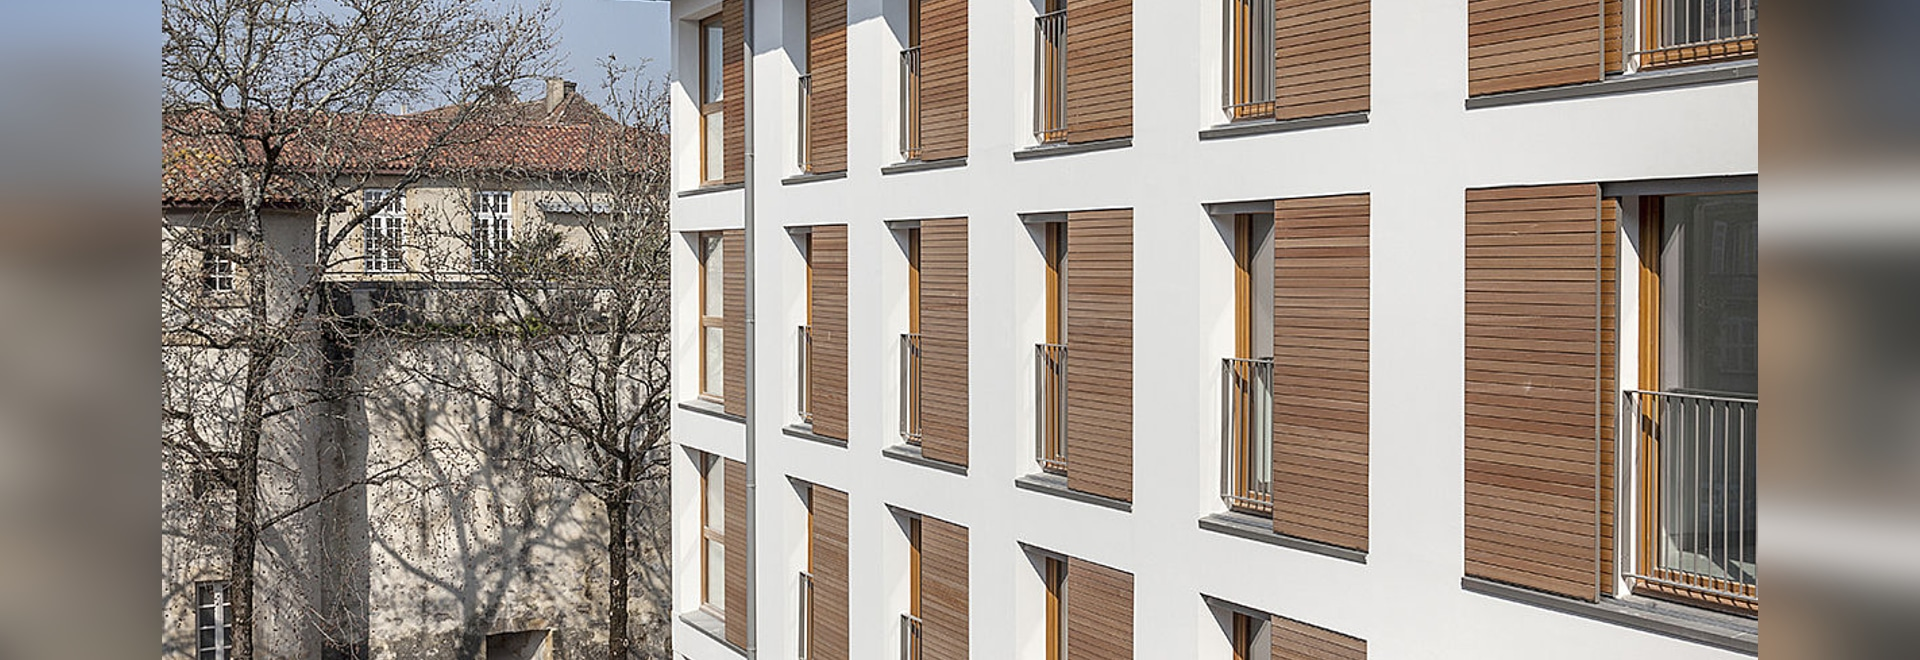 A resolutely modern building in the heart of the historic city of Bayonne